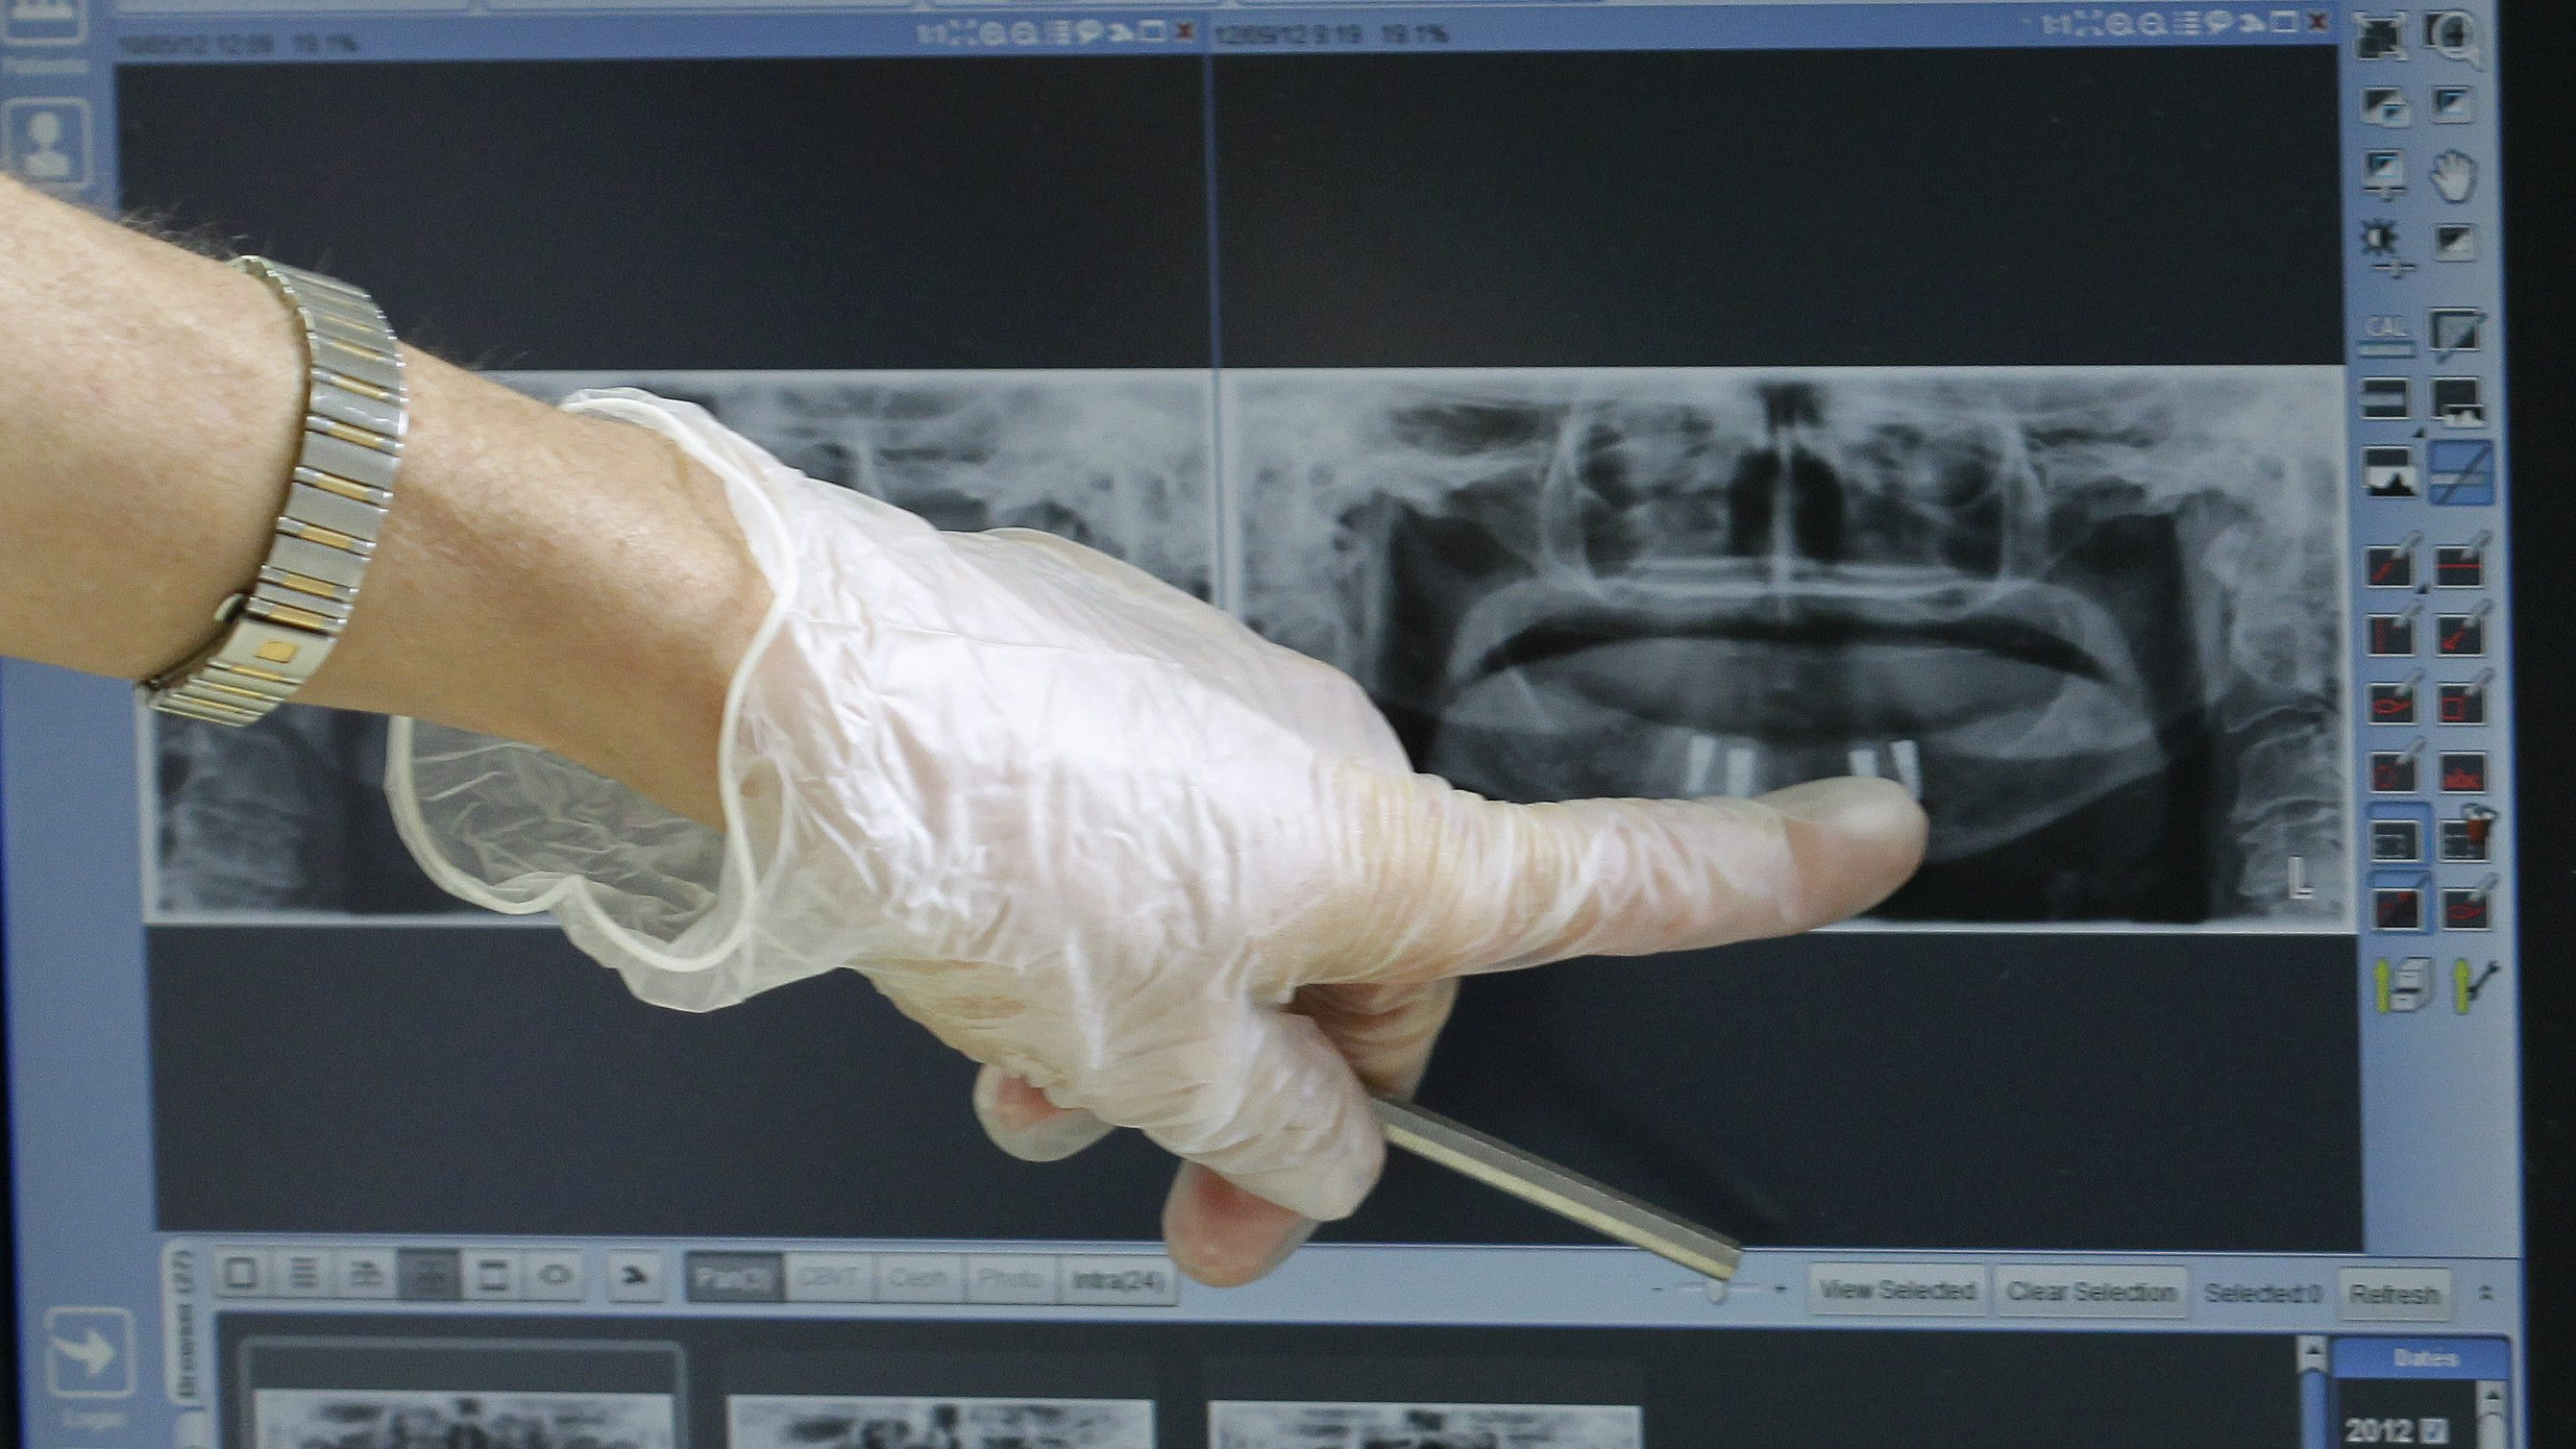 A person wearing a glove points at an X-ray of someones teeth.